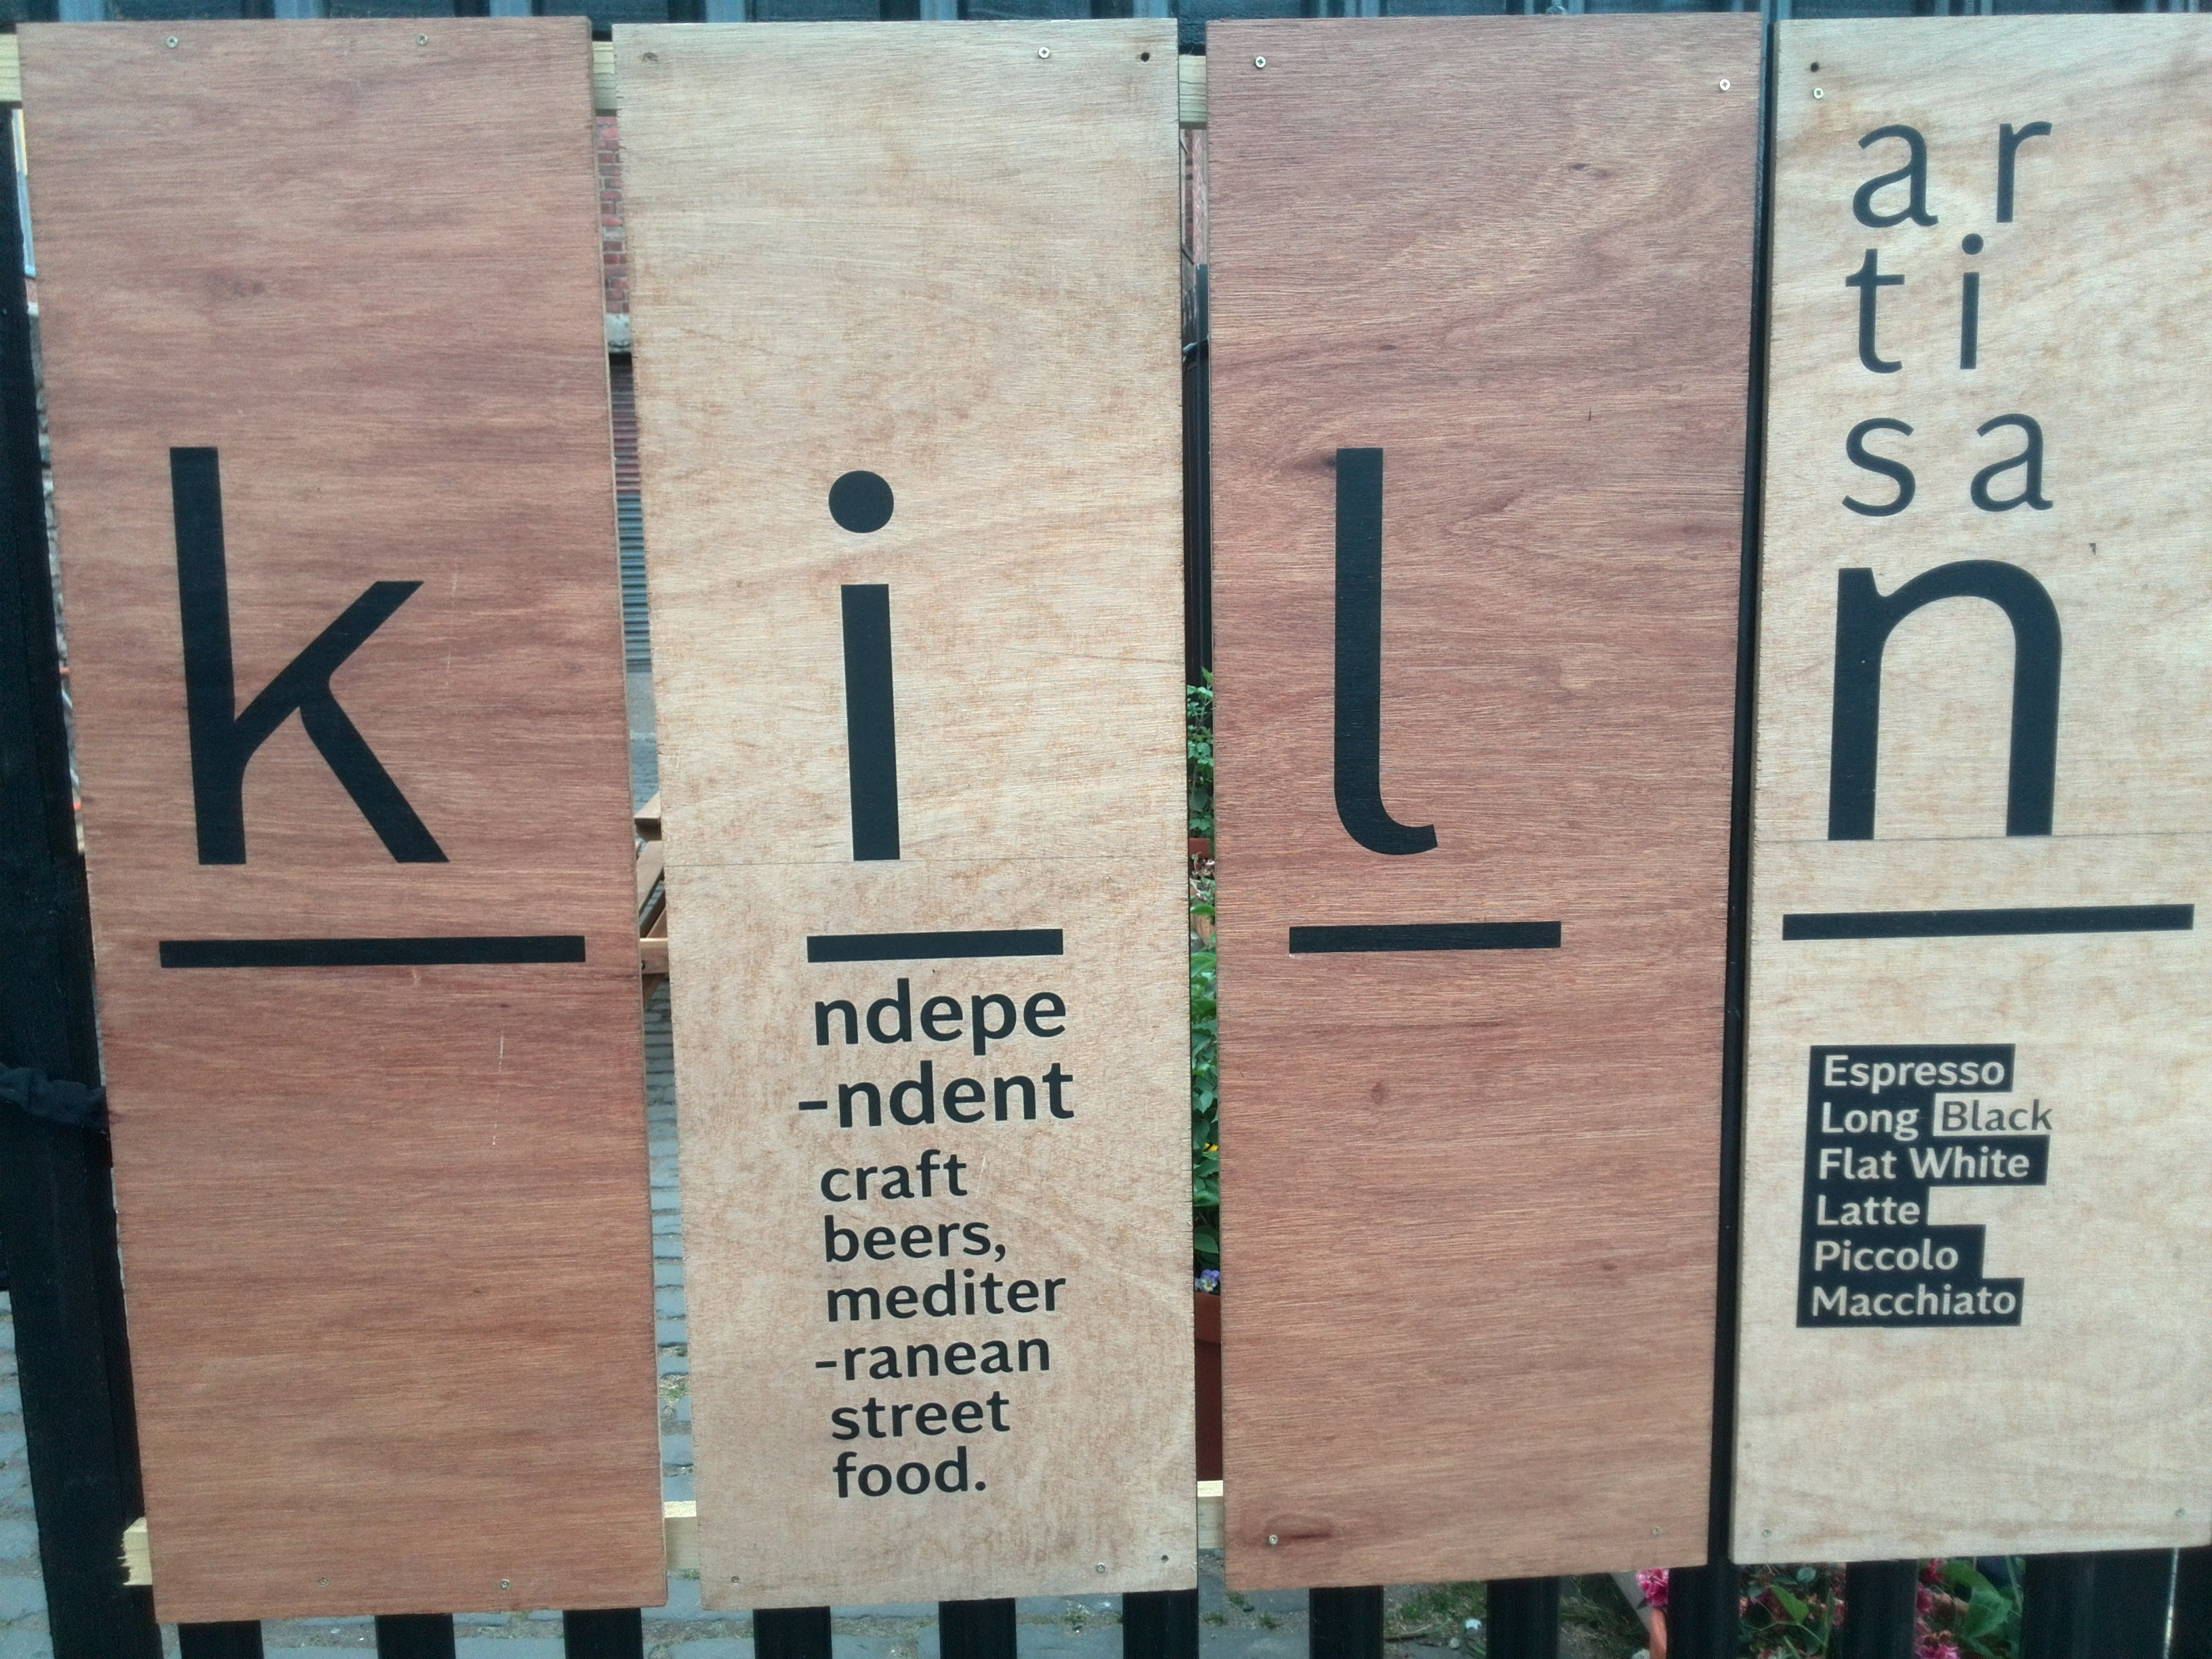 The Kiln Sign